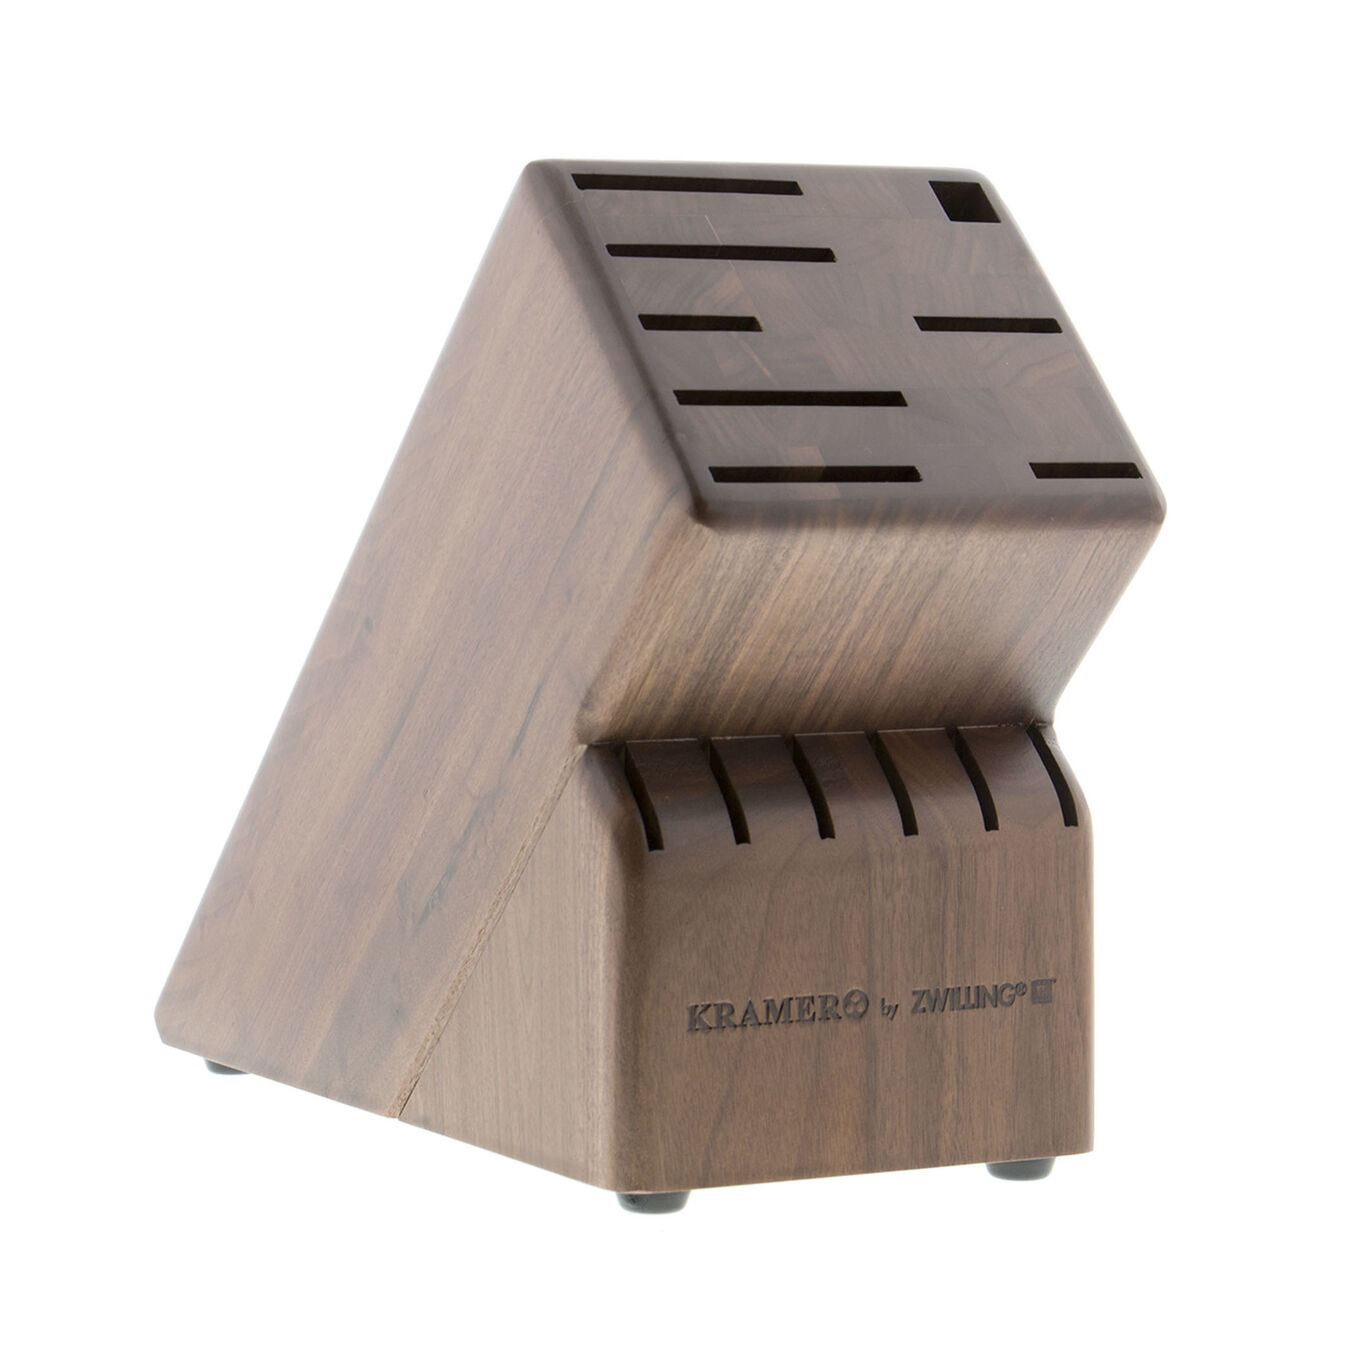 14-slot Walnut Knife Block,,large 1